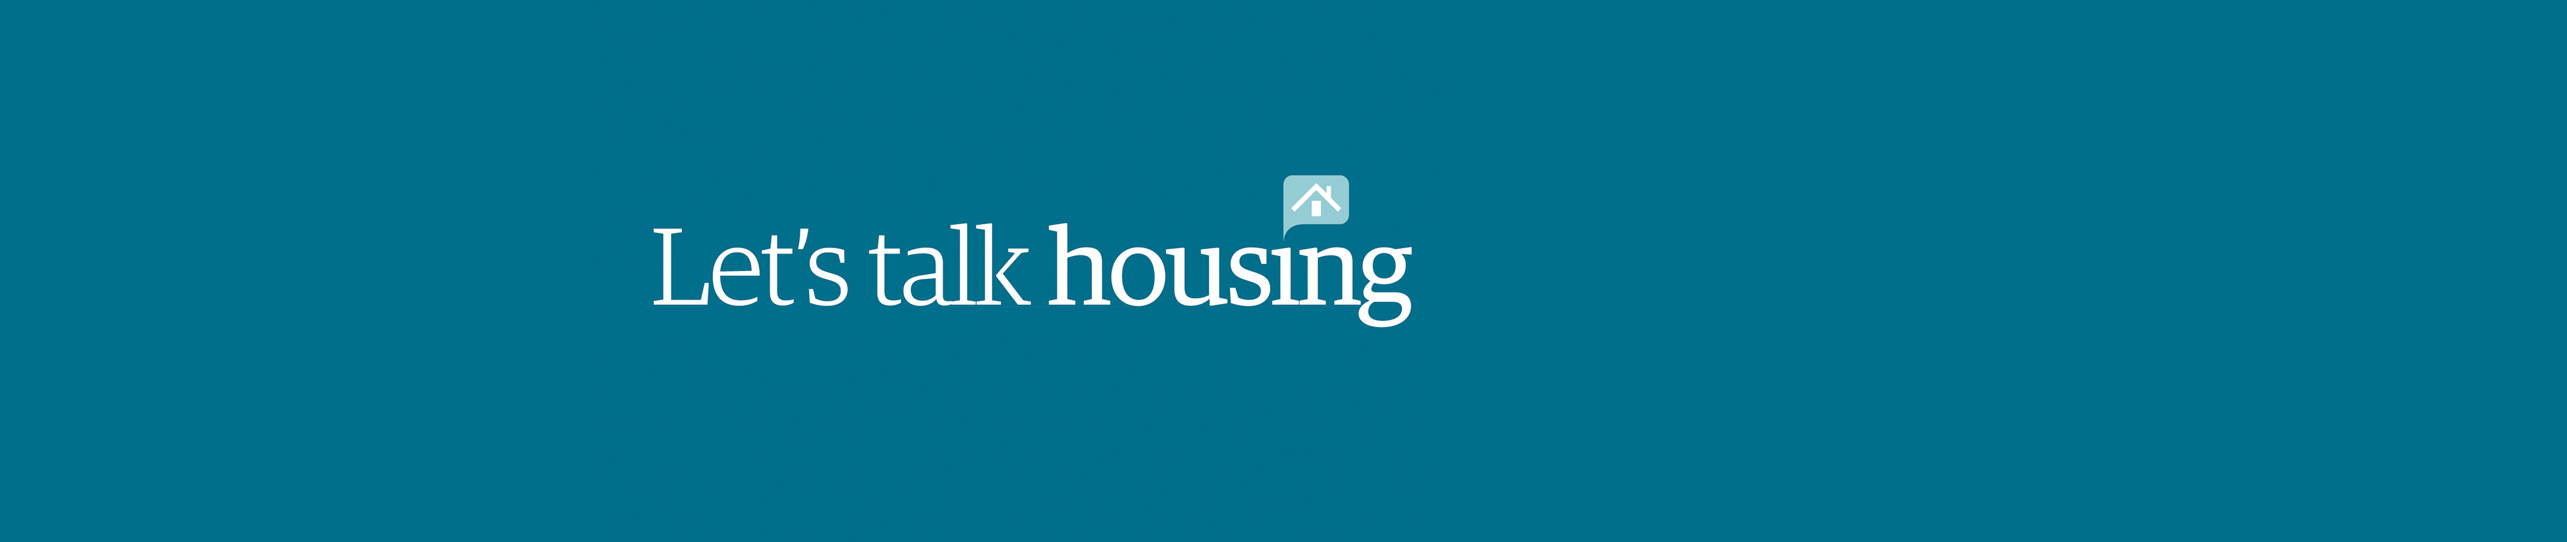 Let's Talk Housing;Let's Talk Housing explores how we can challenge national perceptions of social housing - and lead the debate on the issues that matter.